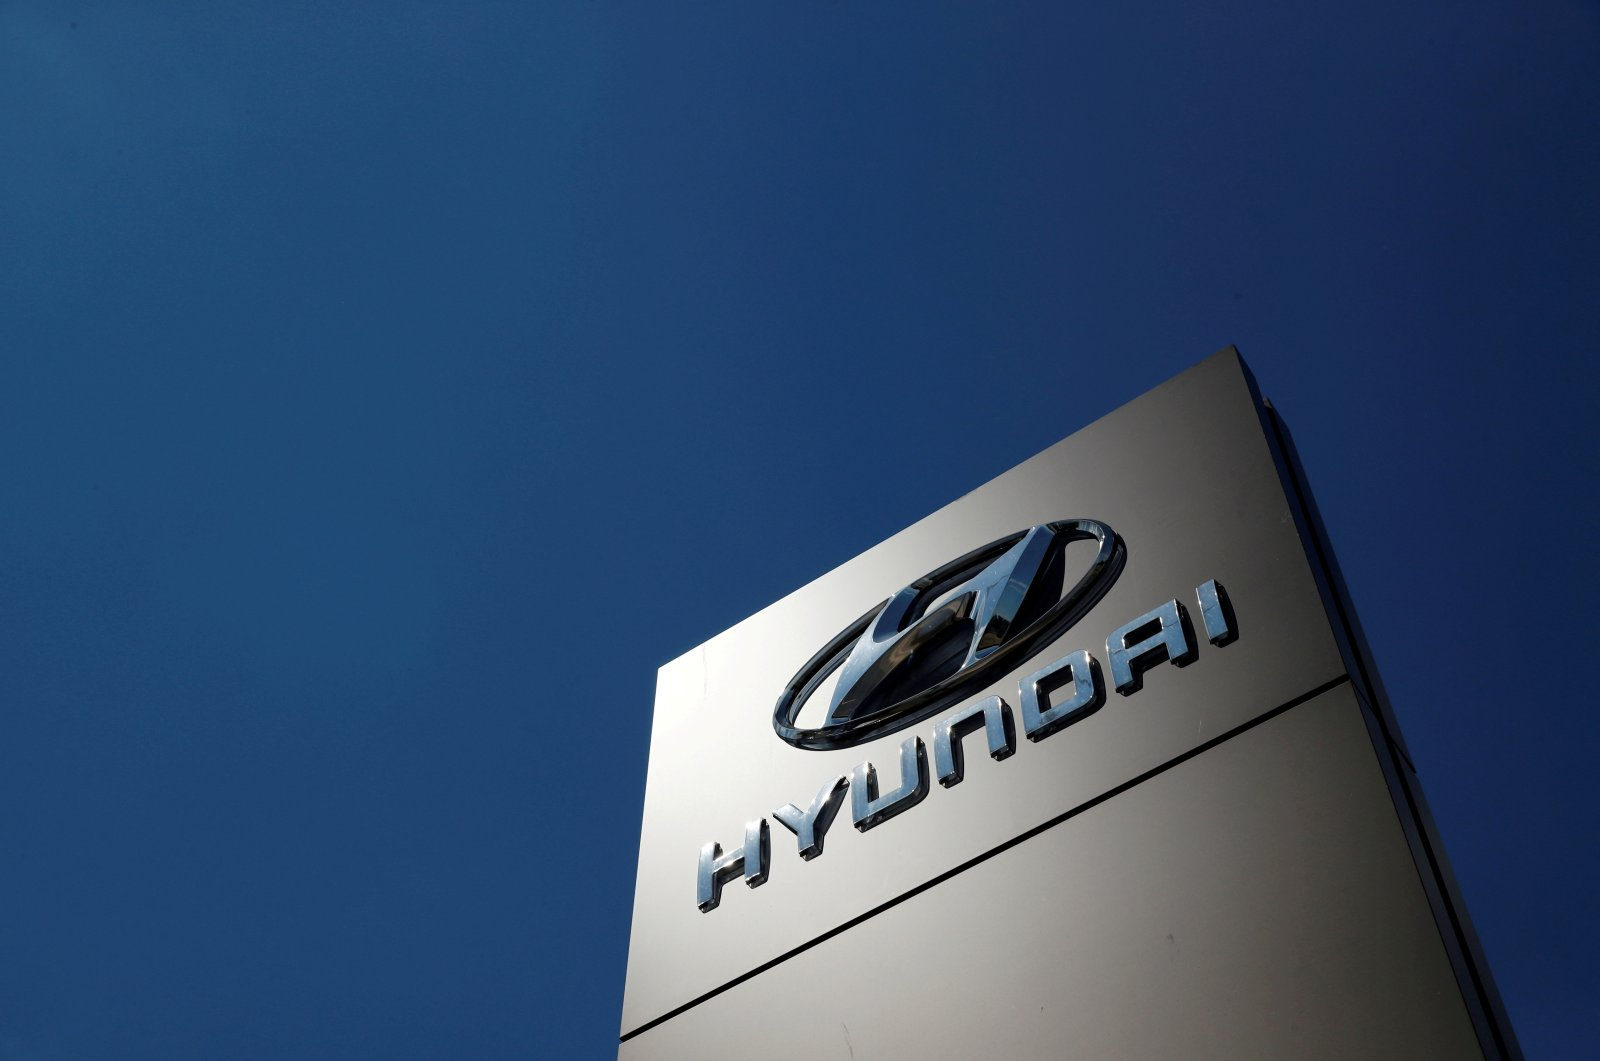 The Hyundai logo is seen outside a car showroom in Bletchley, Milton Keynes, Britain, May 31, 2020. (Reuters File Photo)